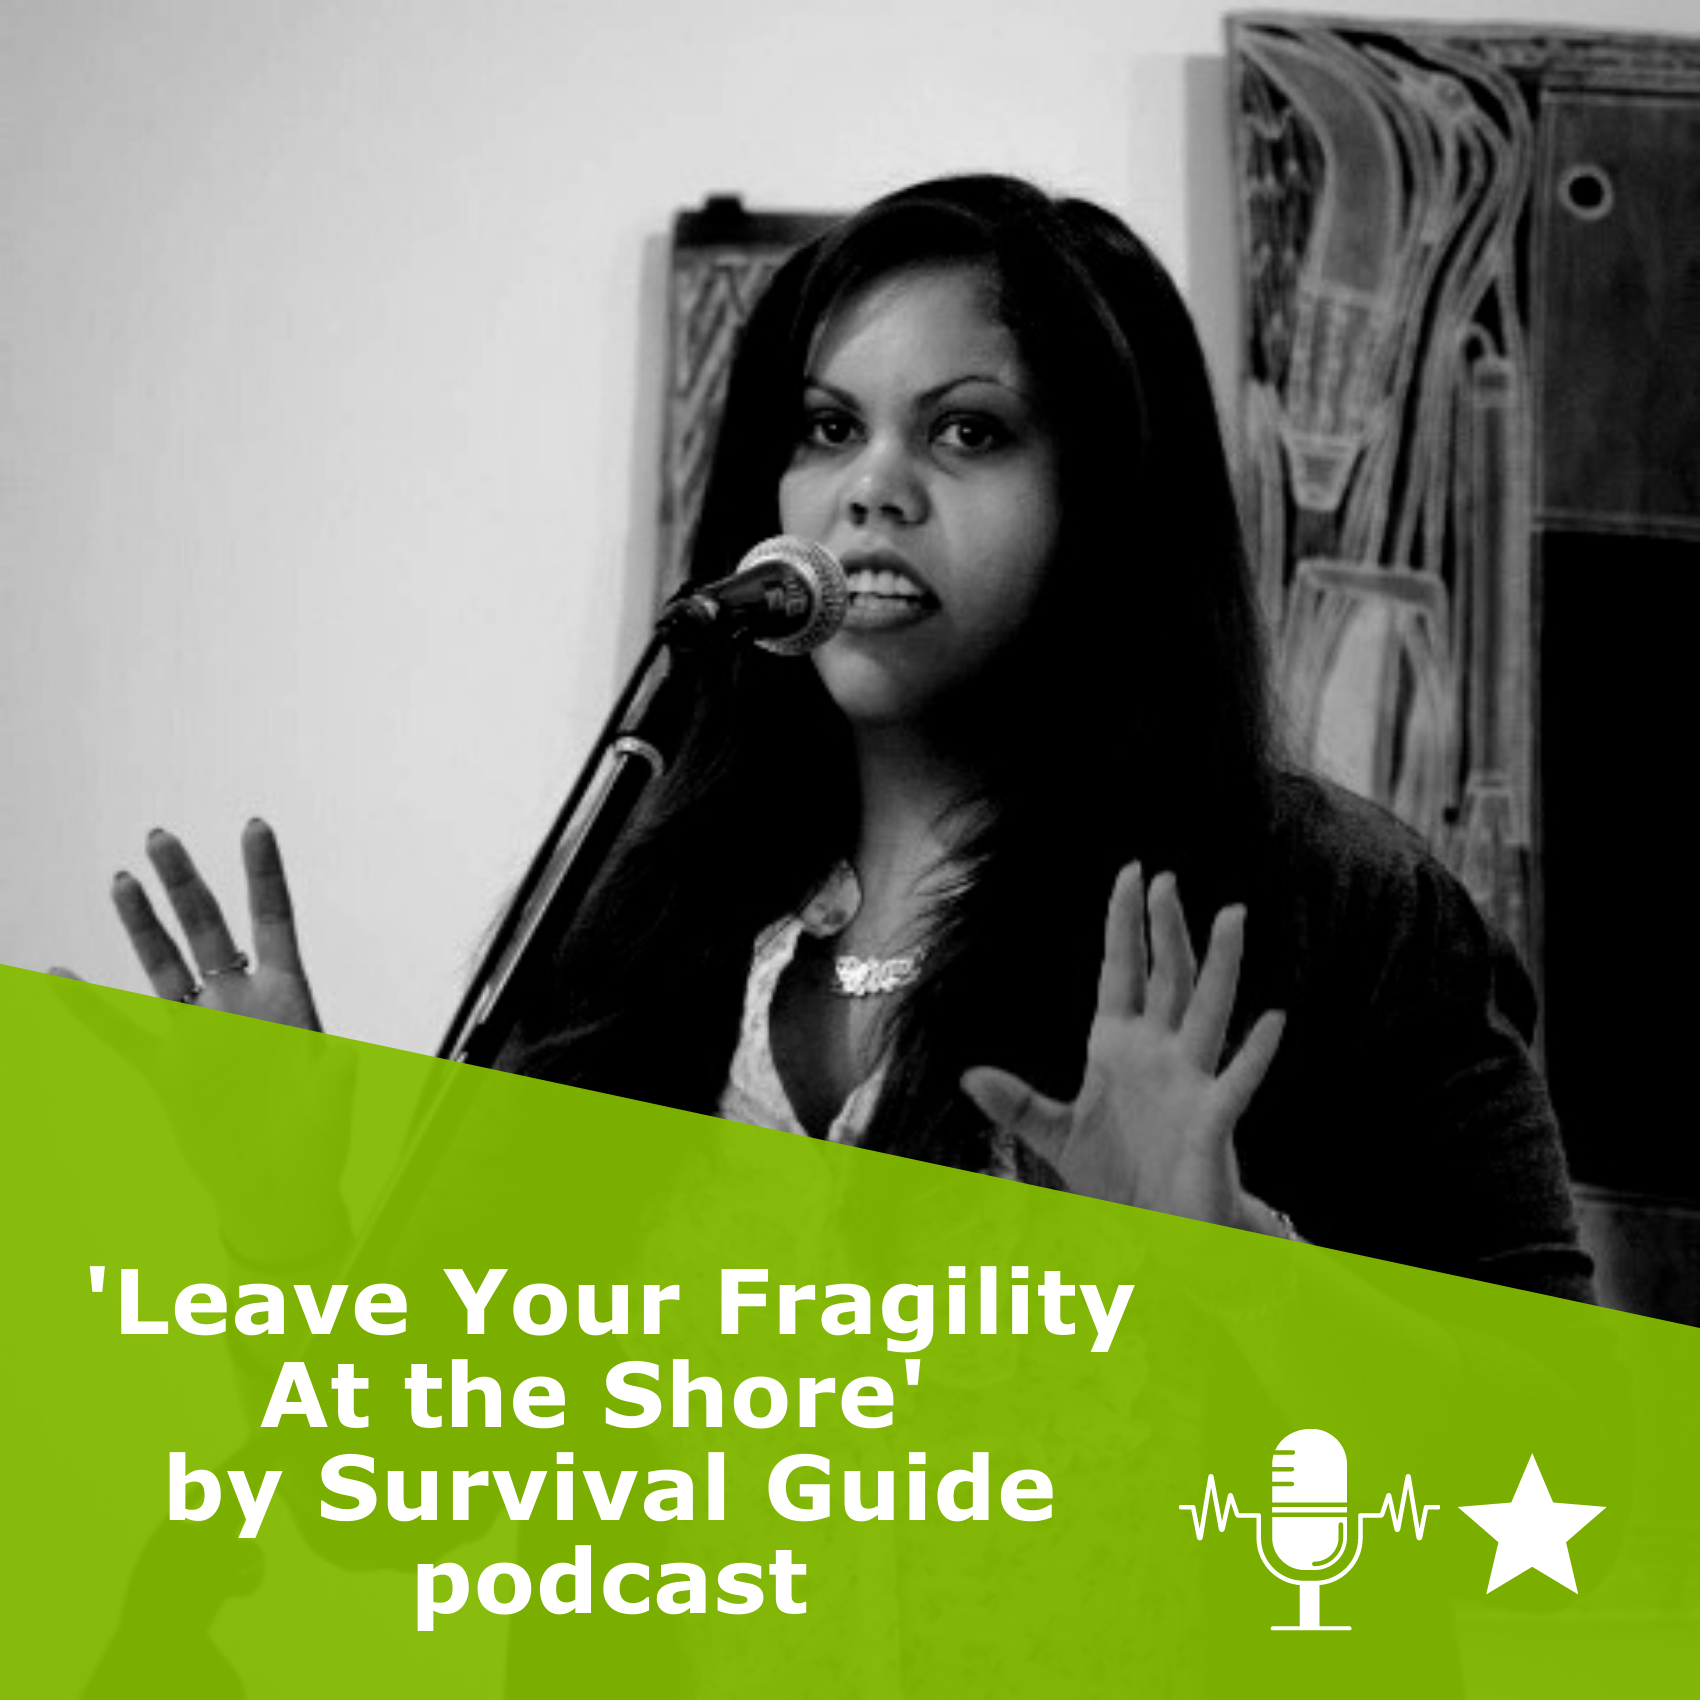 Picture of Lorna Munro in black and white. Title 'Leave Your Fragility At the Shore' by Survival Guide podcast. It is a podcast rated 1 star